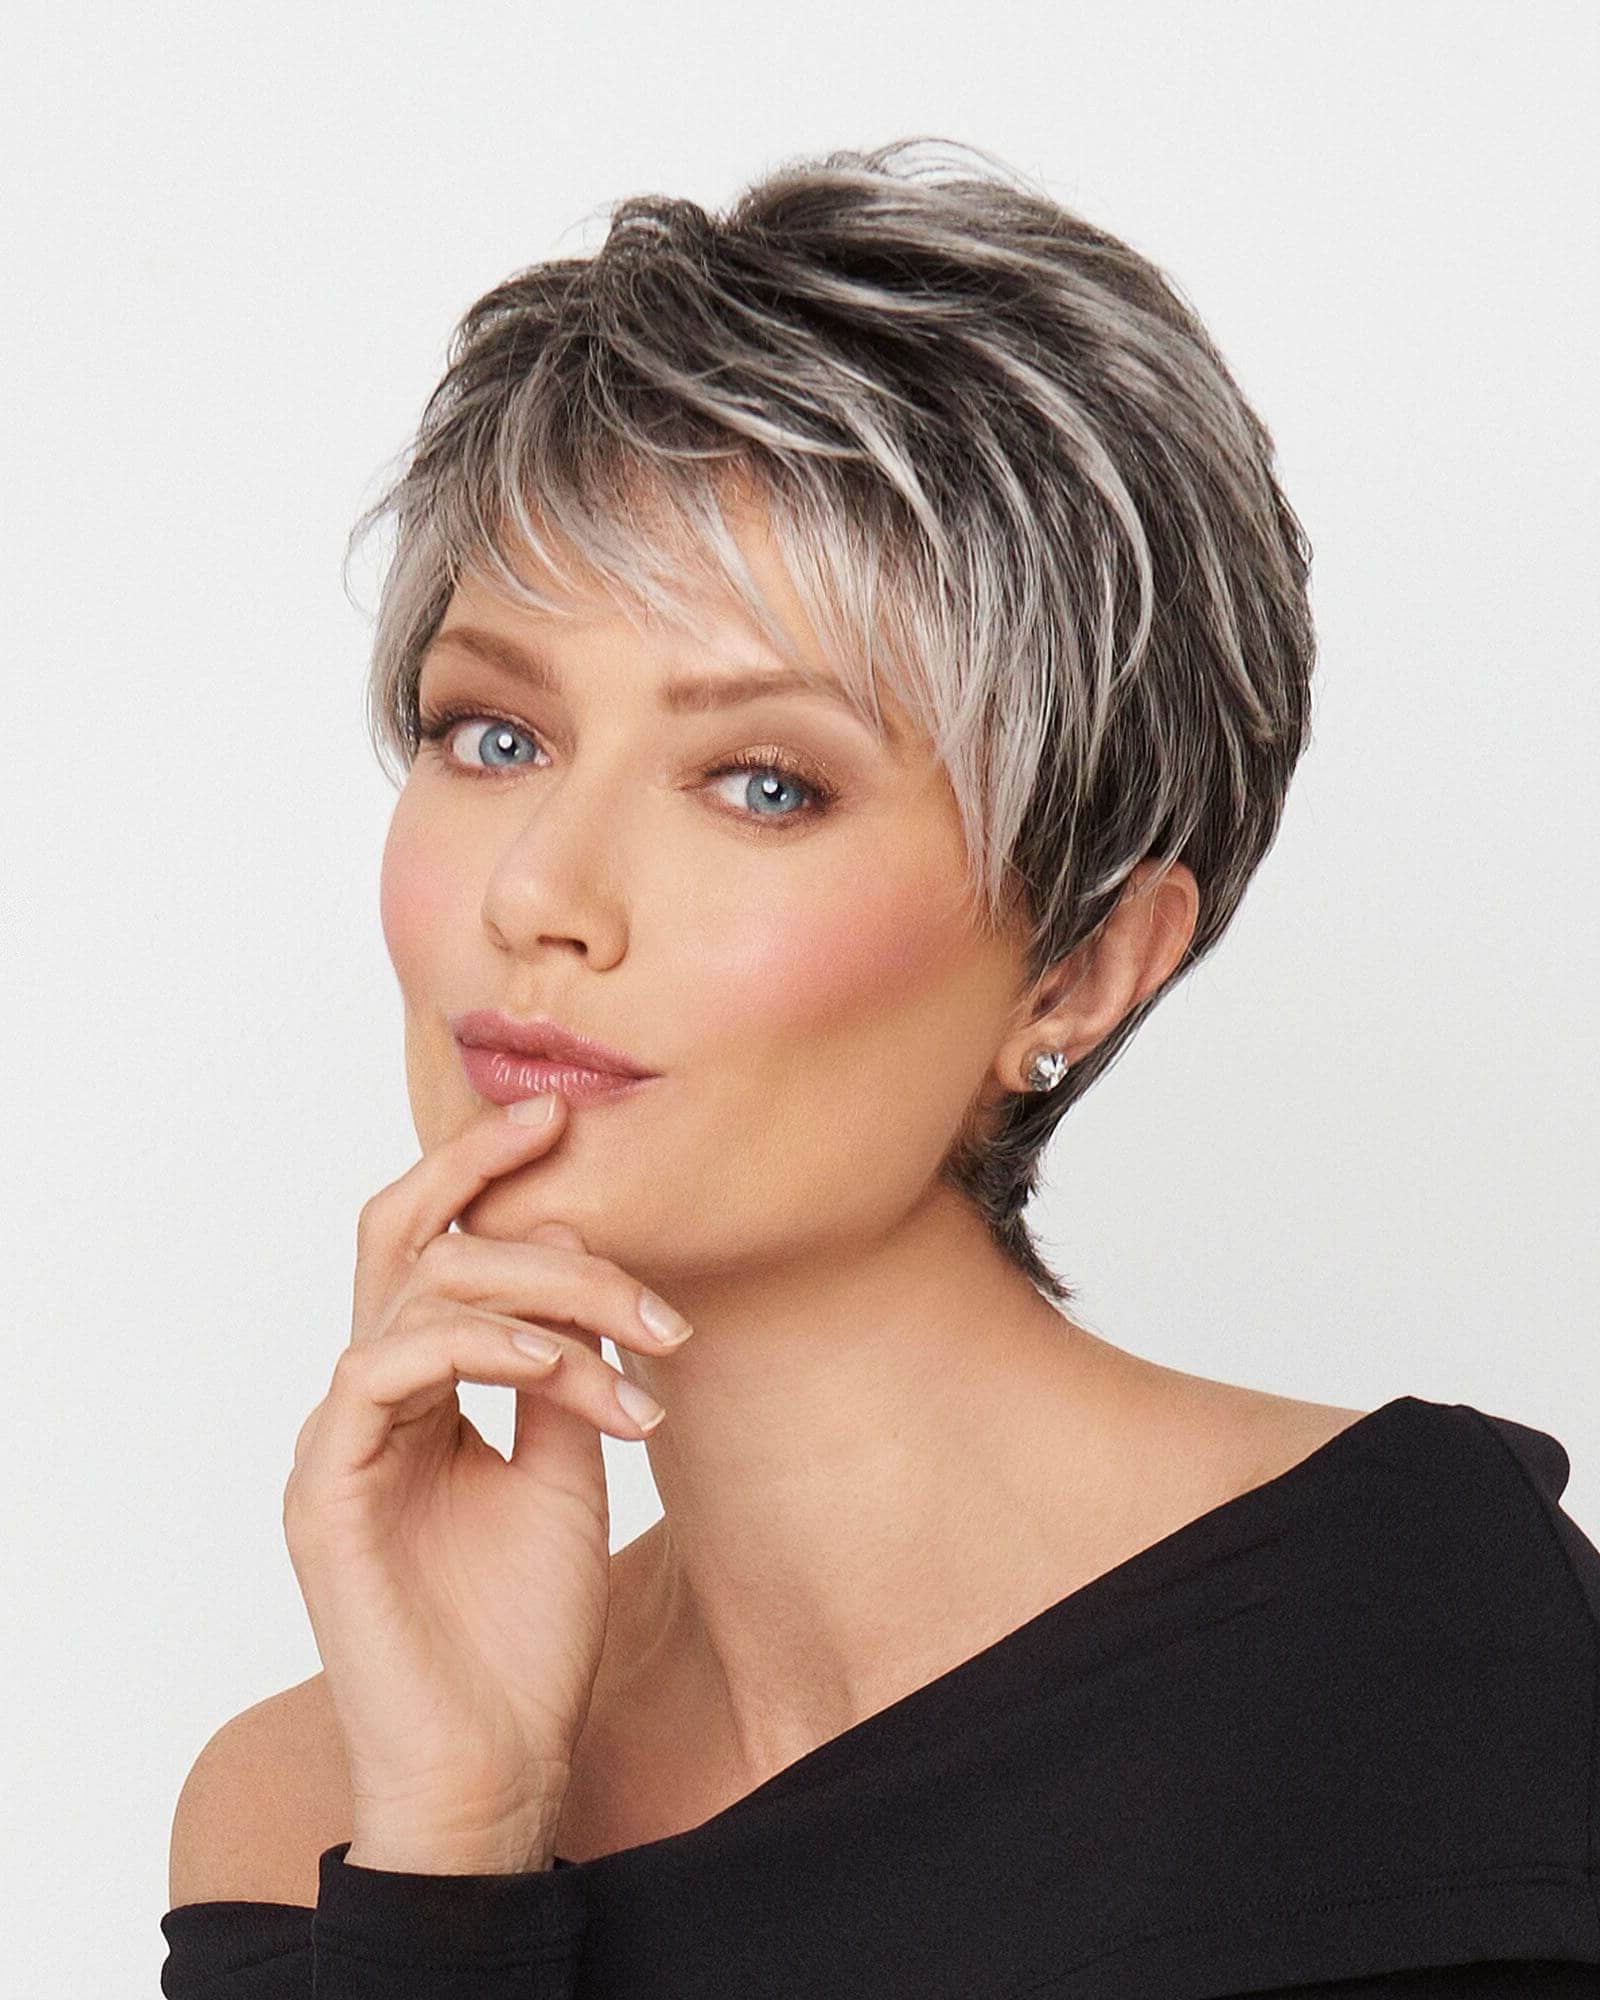 50 Pixie Haircuts You'll See Trending In 2018 Pertaining To Layered Pixie Hairstyles With An Edgy Fringe (View 12 of 20)